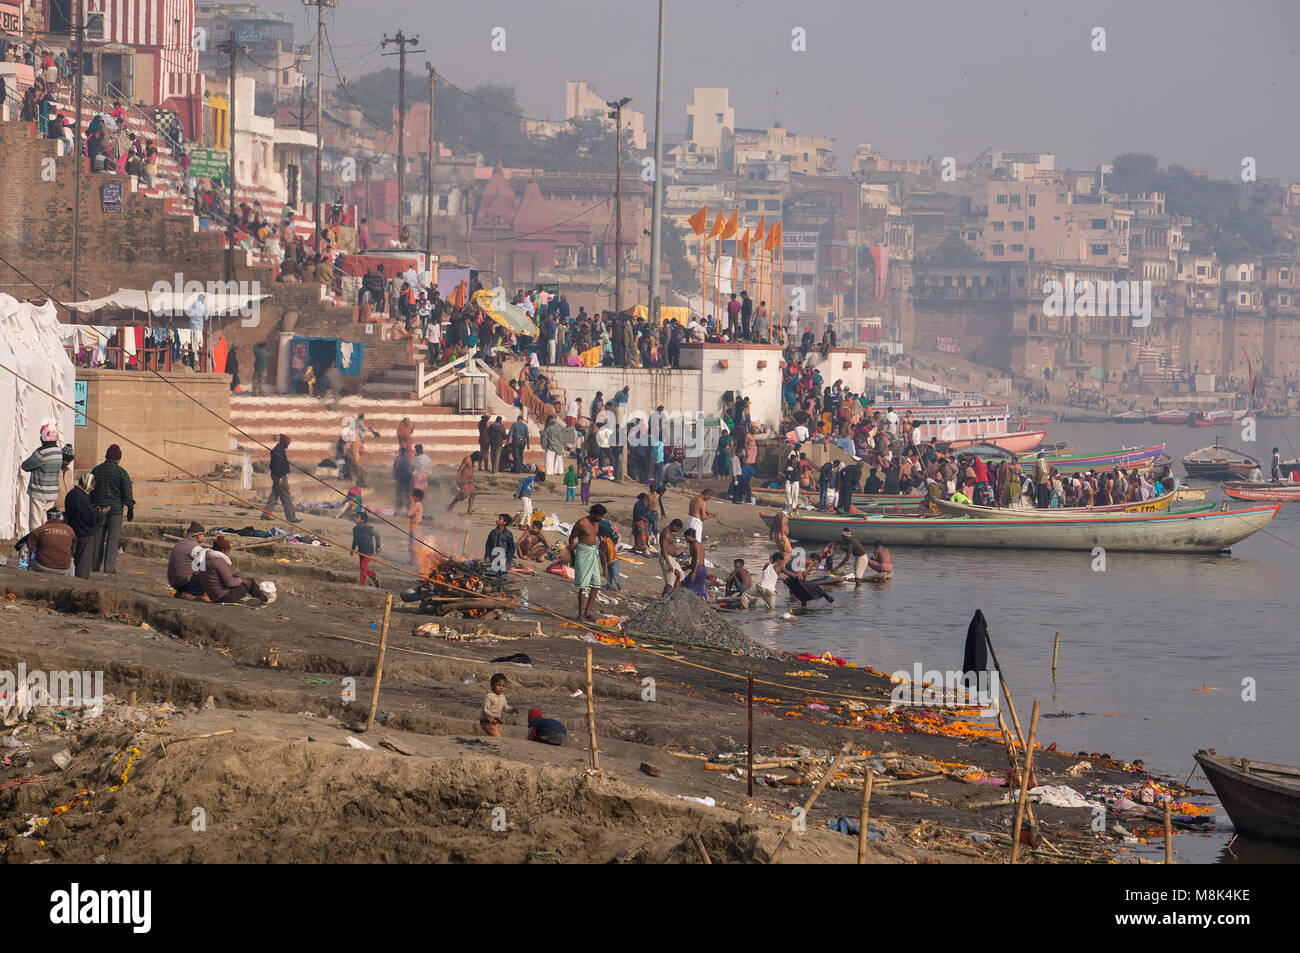 VARANASI, INDIA. February 28, 2017: A typical day on the banks of the river Ganges: Hindus burn dead bodies, washed - Stock Image